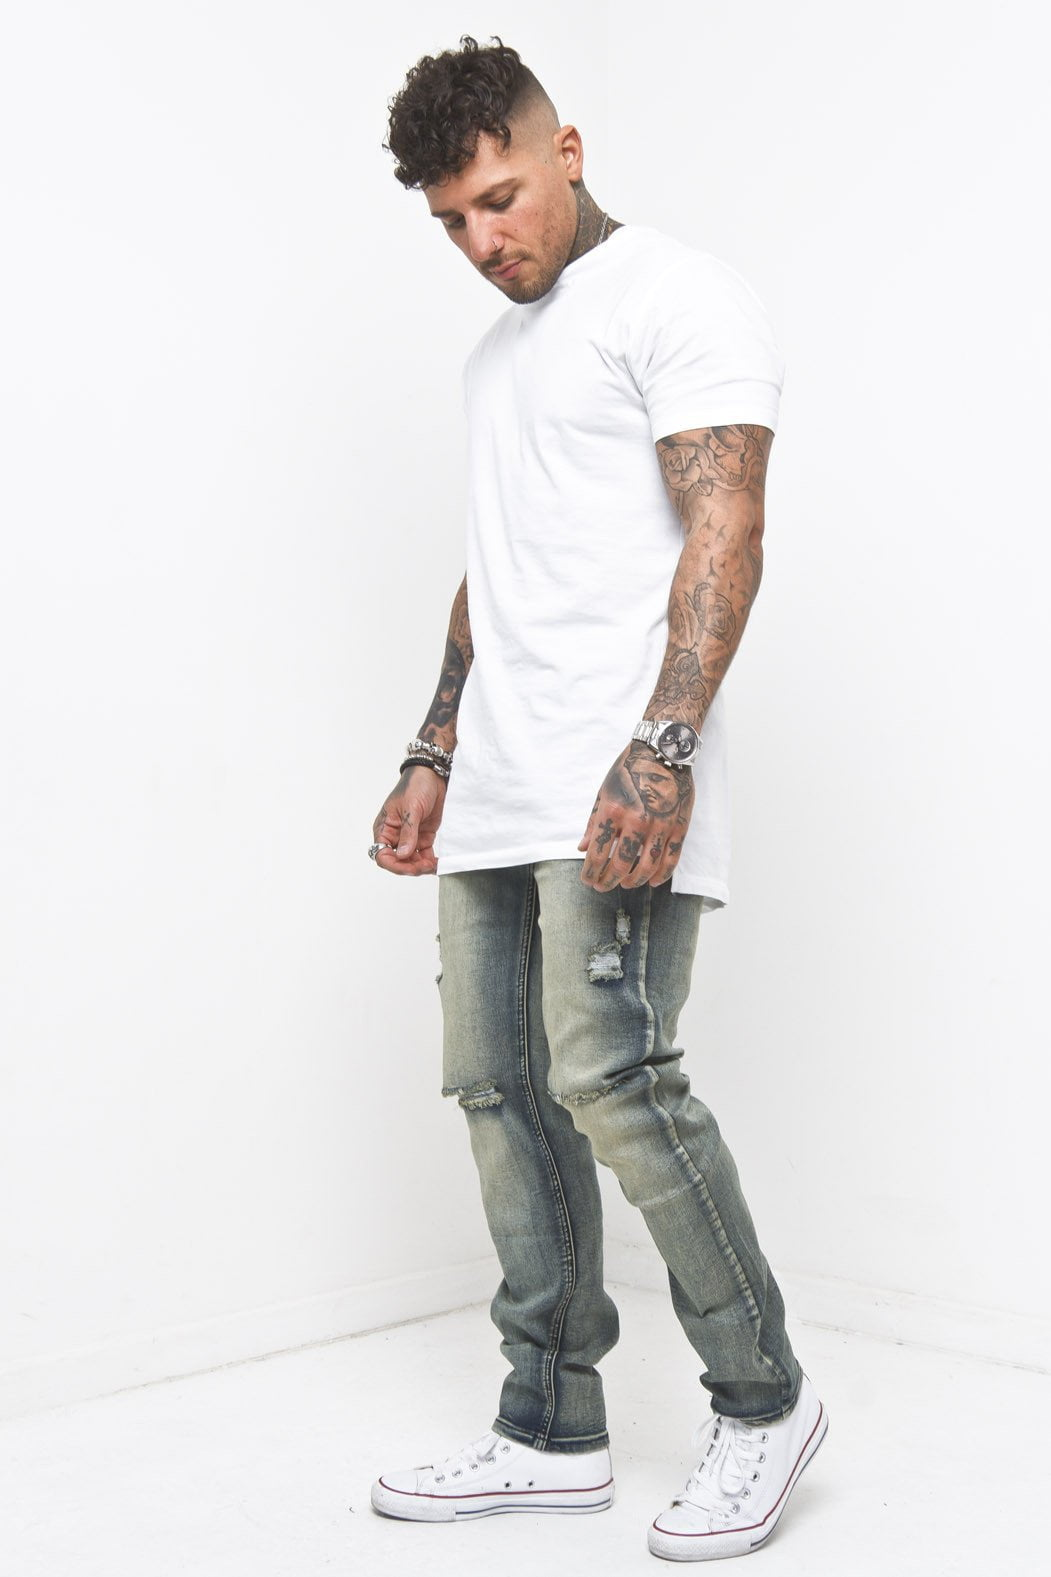 Faro Slim fit dirty washed denims - Liquor N Poker  Liquor N Poker